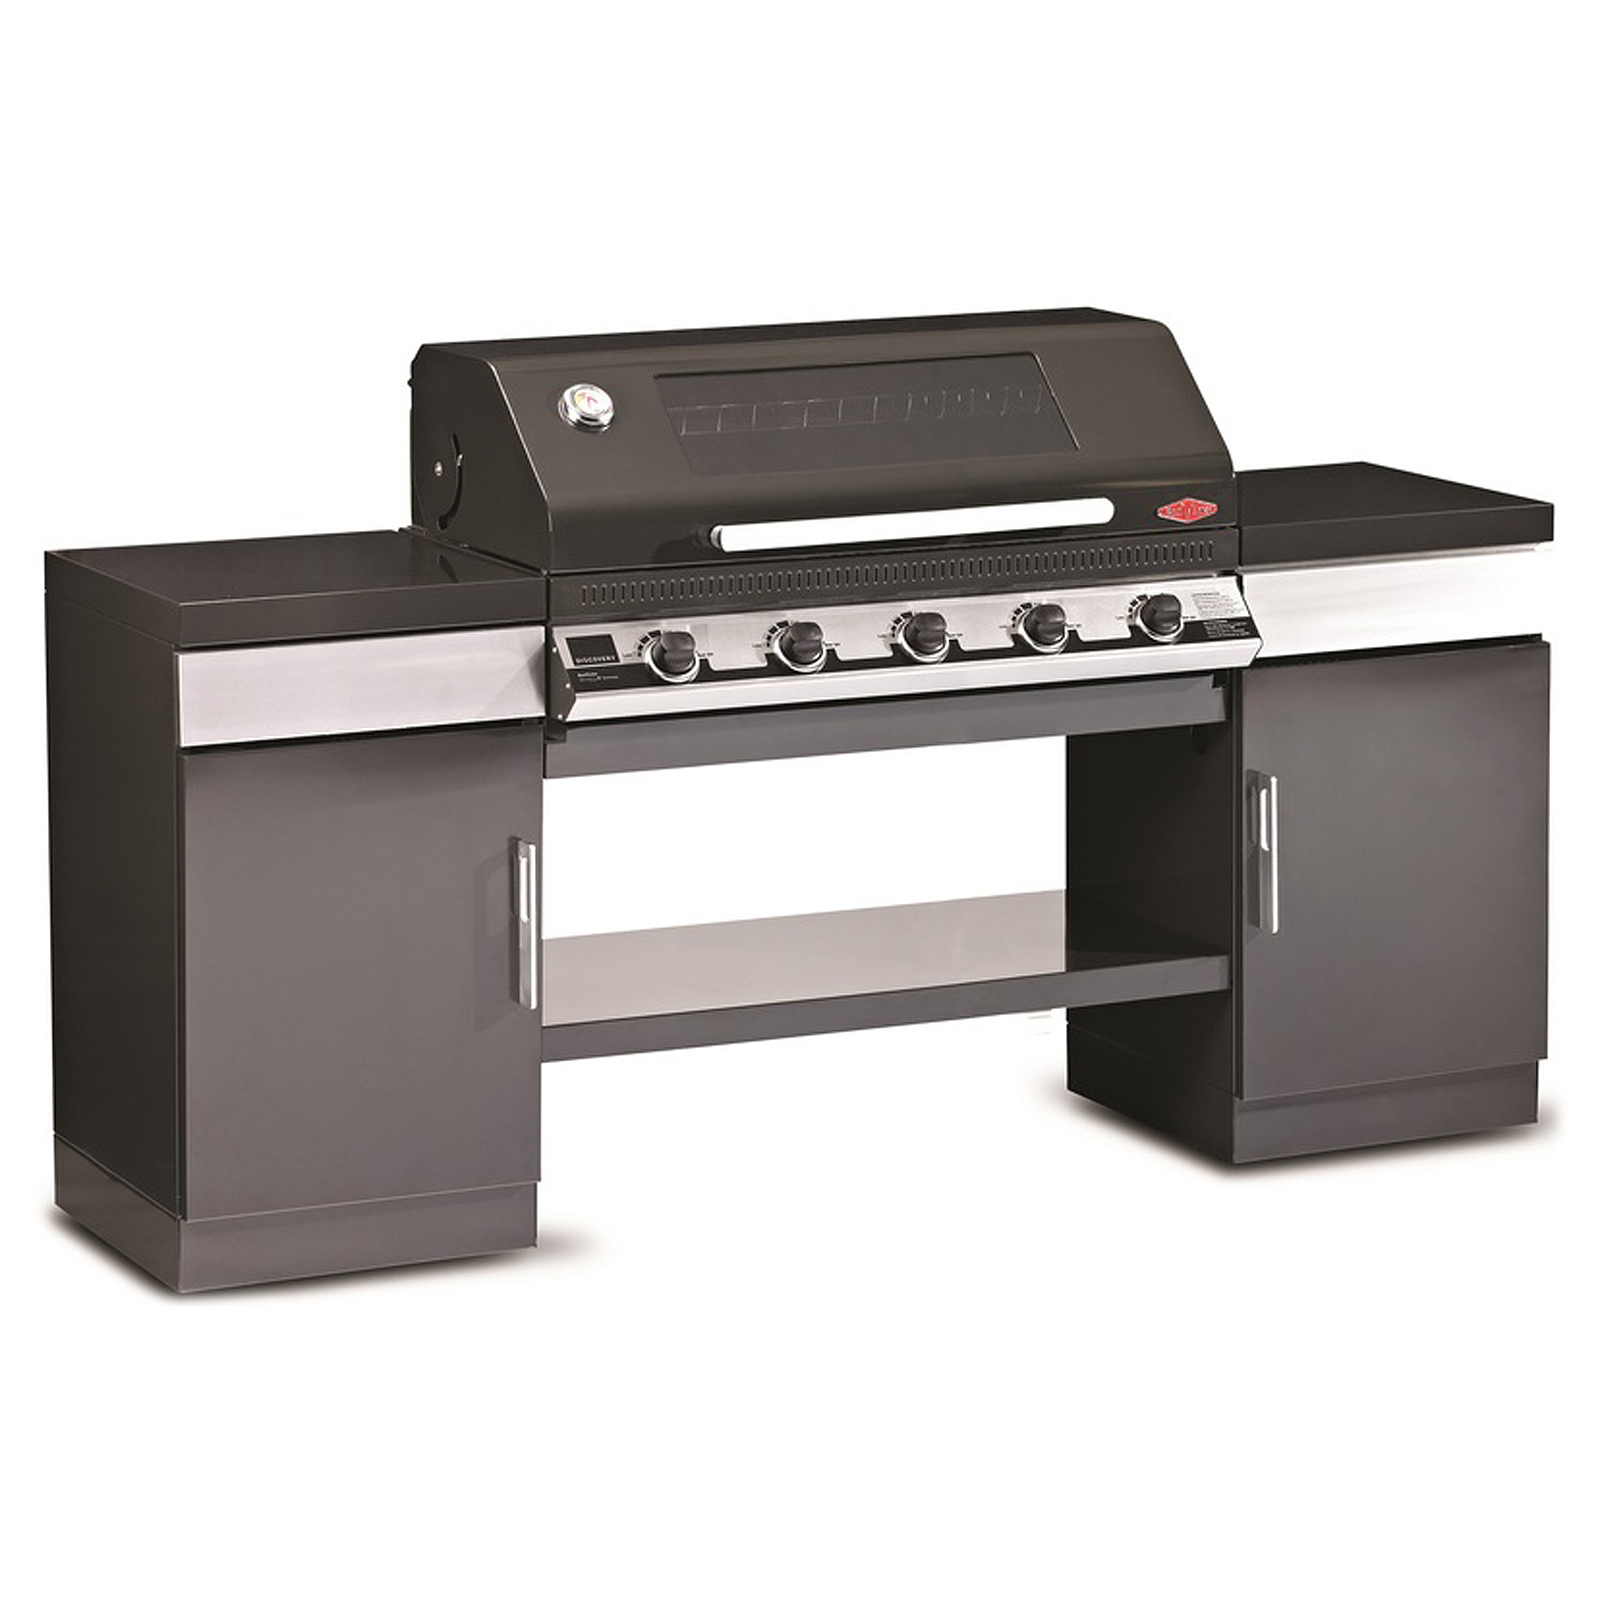 Outdoor Küche Portable Outdoor Kitchen Discovery 1100e Outdoor Kitchen 5 Burner